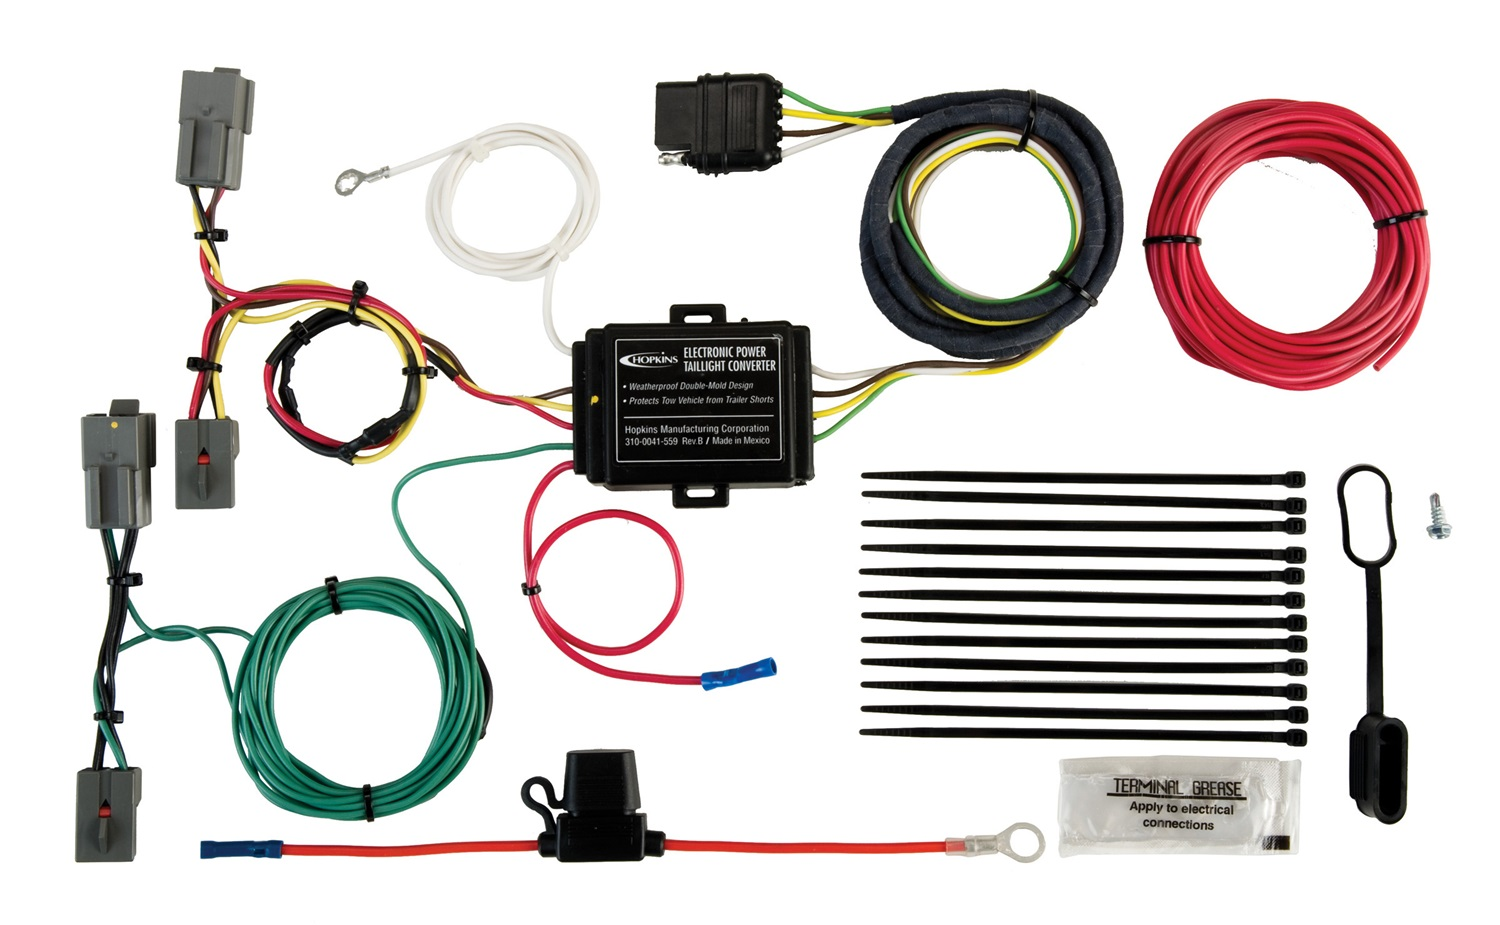 hight resolution of hopkins towing solution 11140504 plug in simple vehicle to trailer wiring harness incl short proof power converter trailer wiring harness plug in